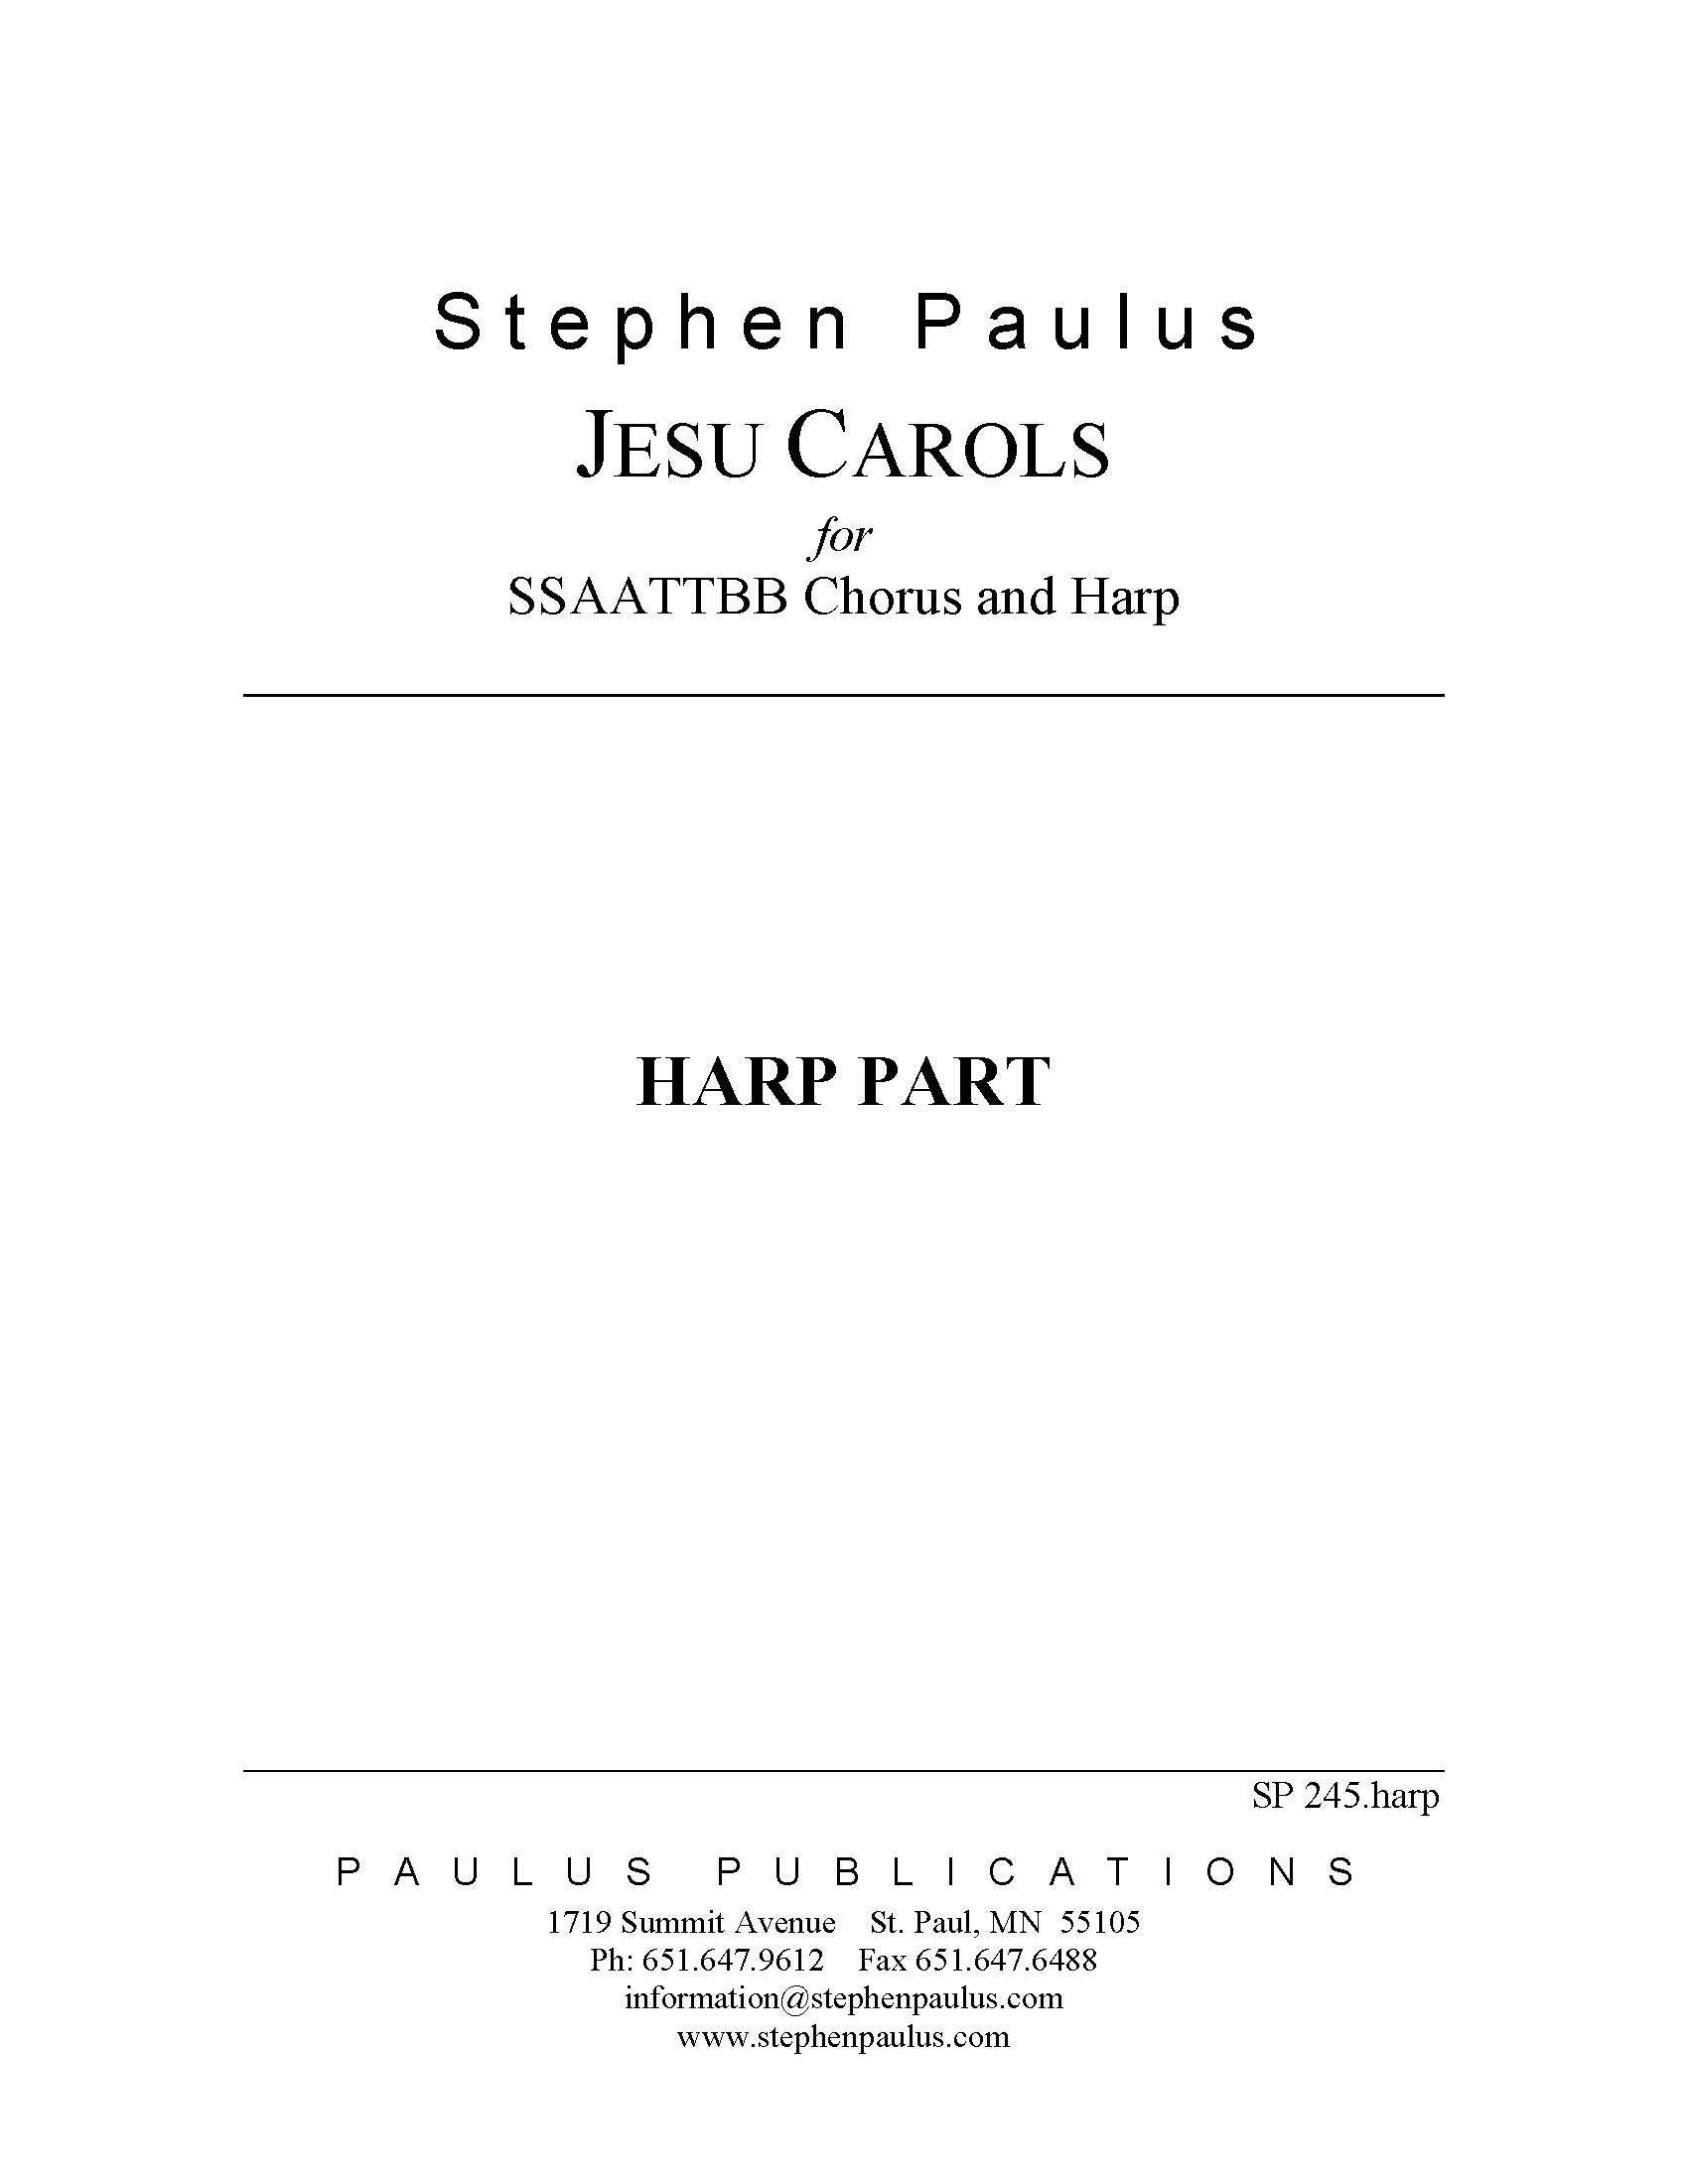 Jesu Carols - Harp Part for SSAATTBB Chorus & Harp